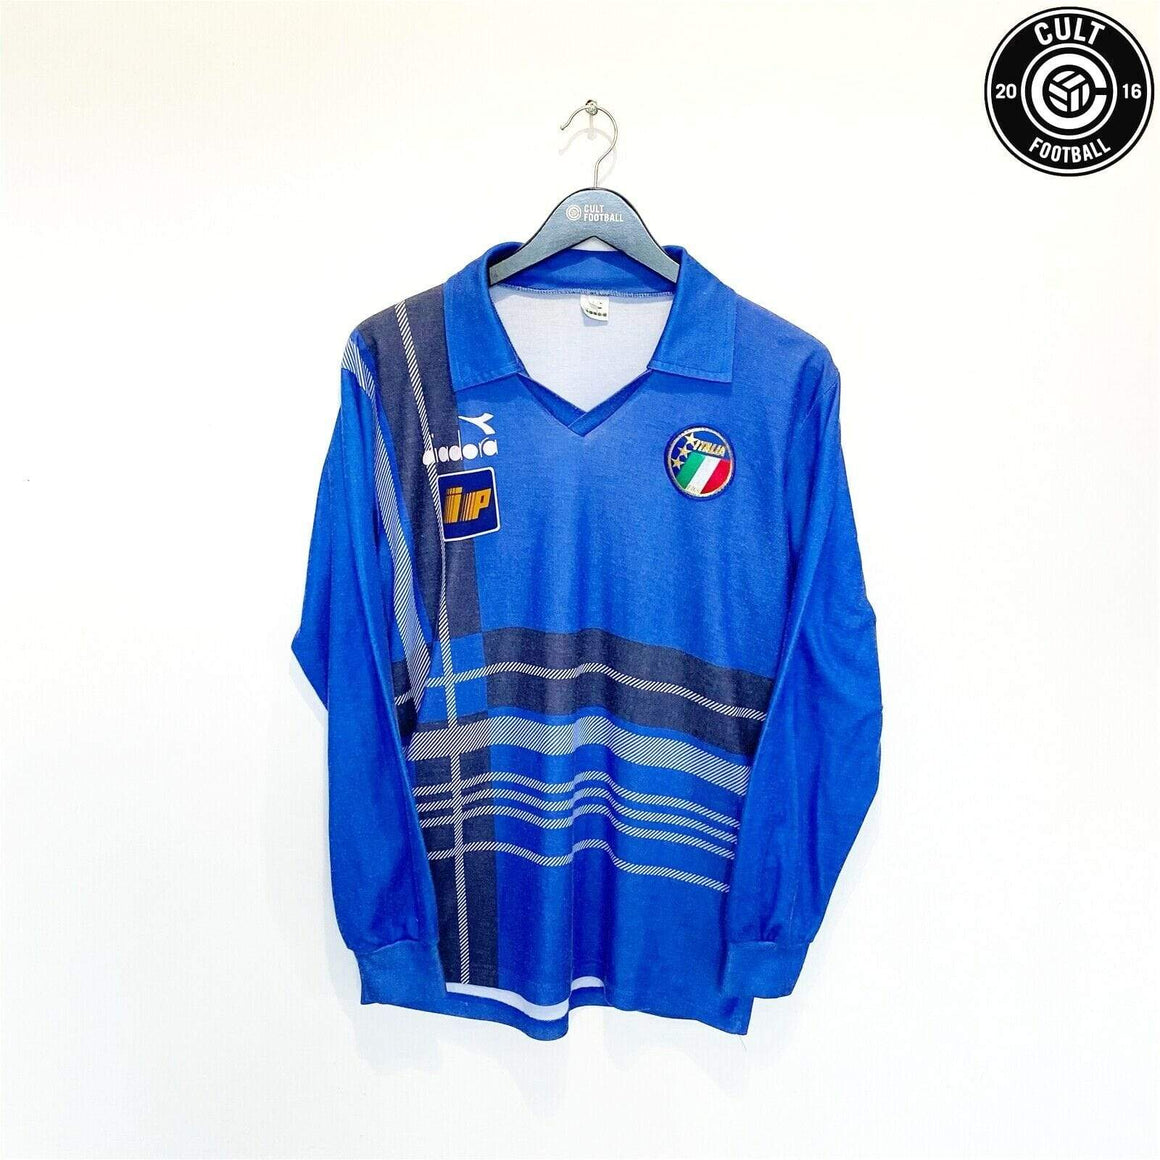 Cult Football 1986/88 ITALY Vintage Diadora Player Issue Football Training Shirt Jersey (M)